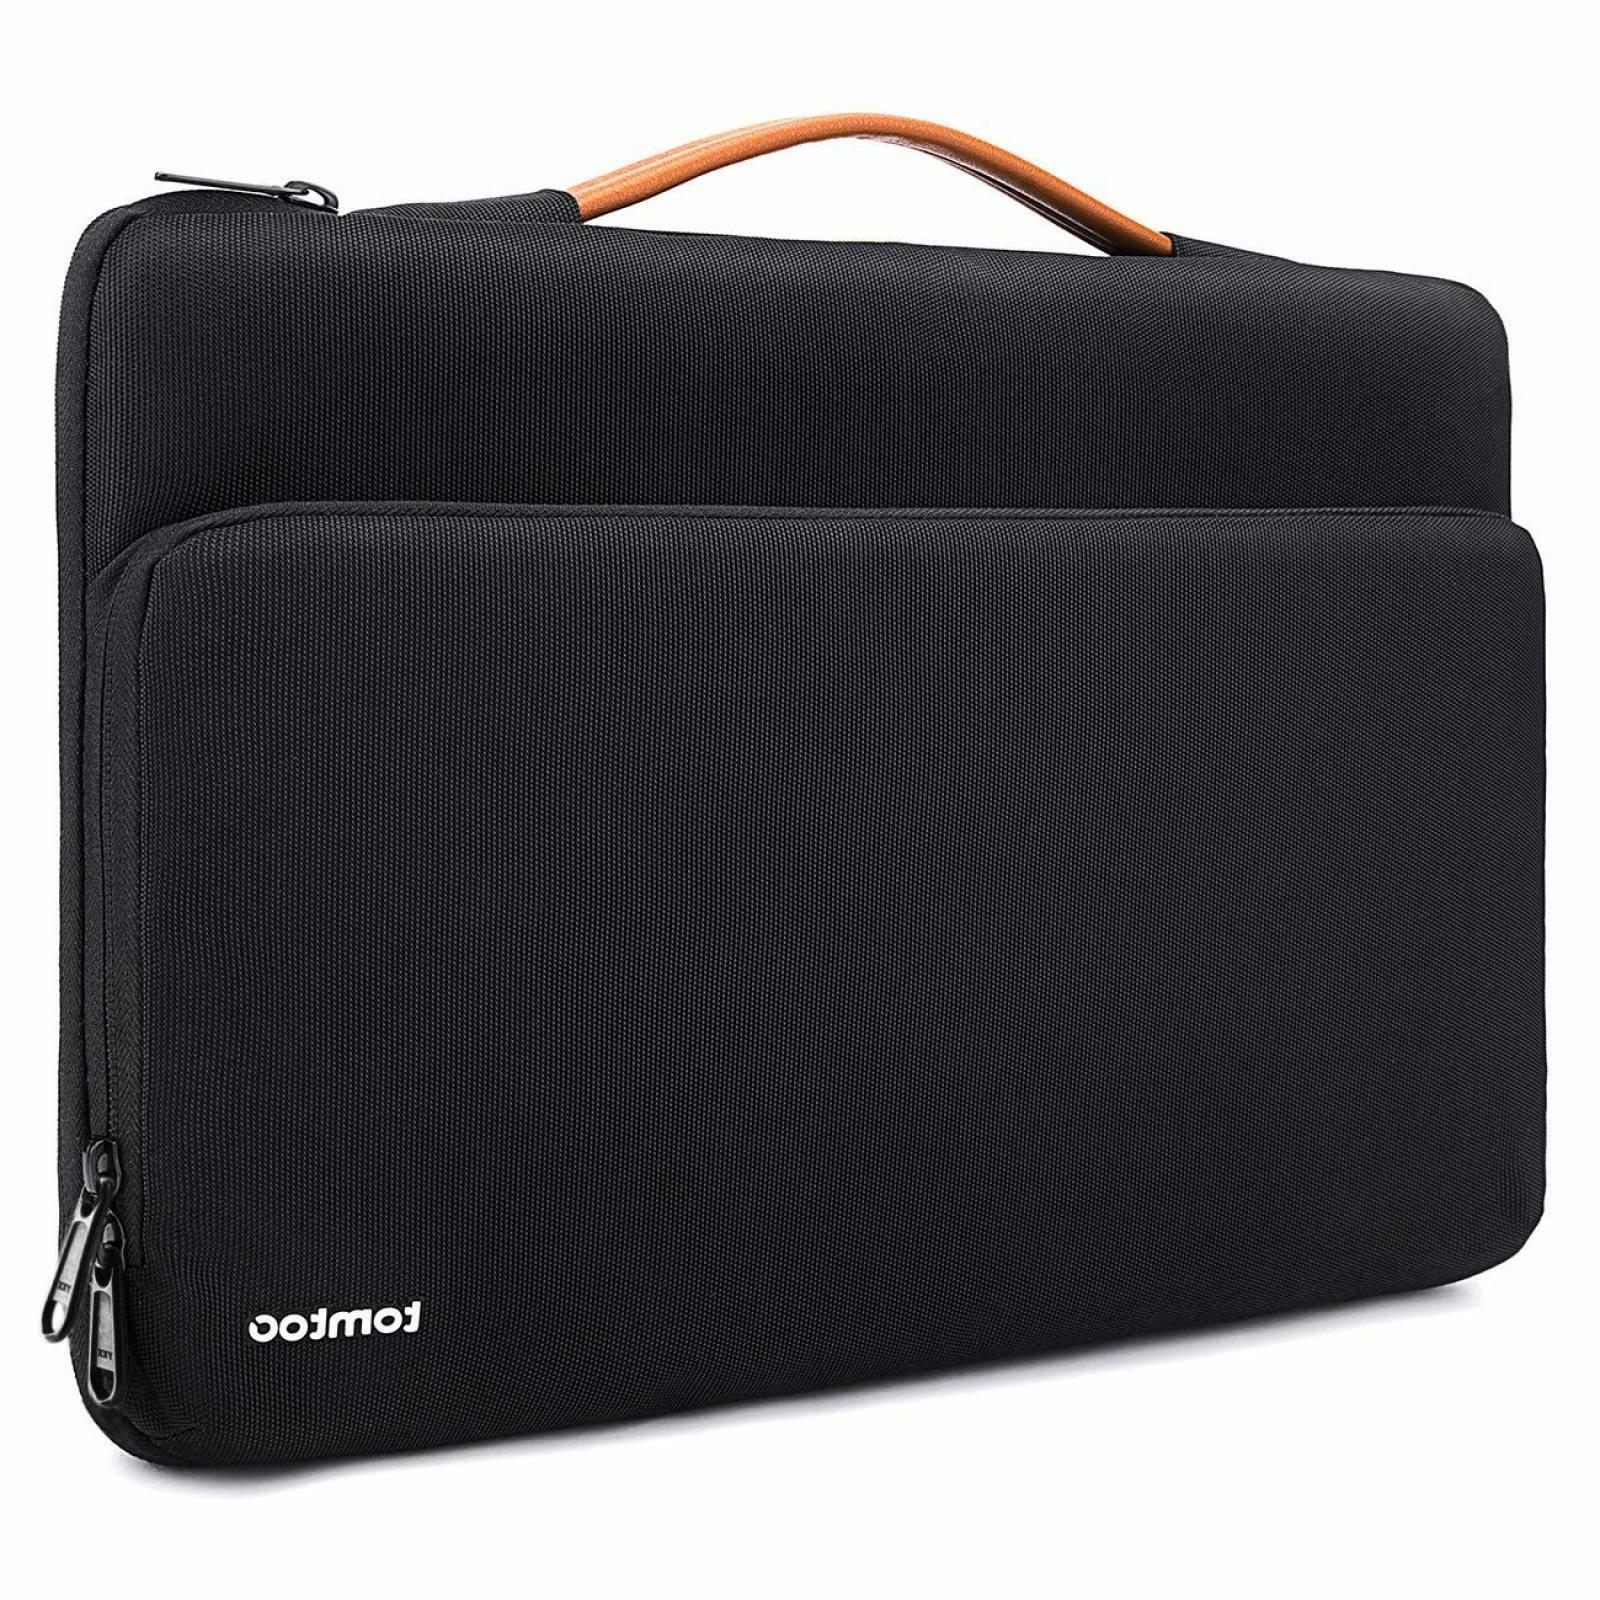 MacBook Pro 2017 Laptop Sleeve Tablet Bag Carry Case Cover 1